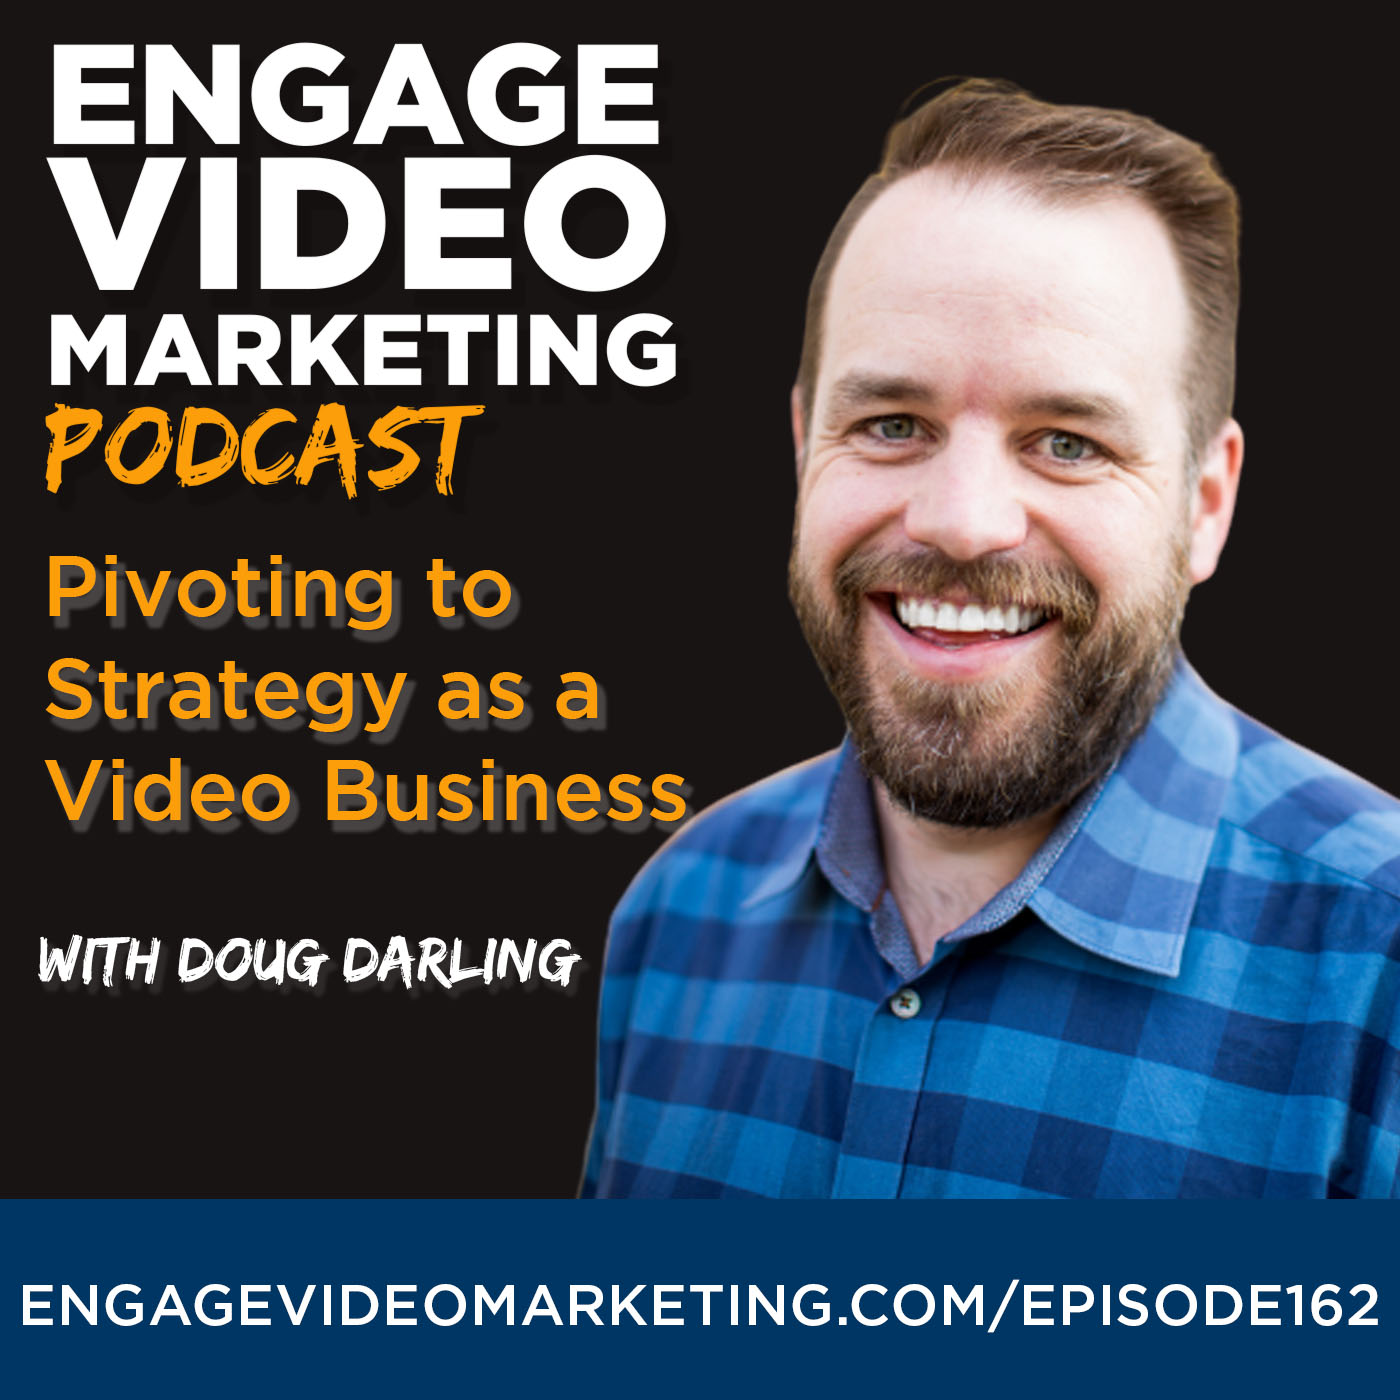 Pivoting to Strategy as a Video Business with Doug Darling